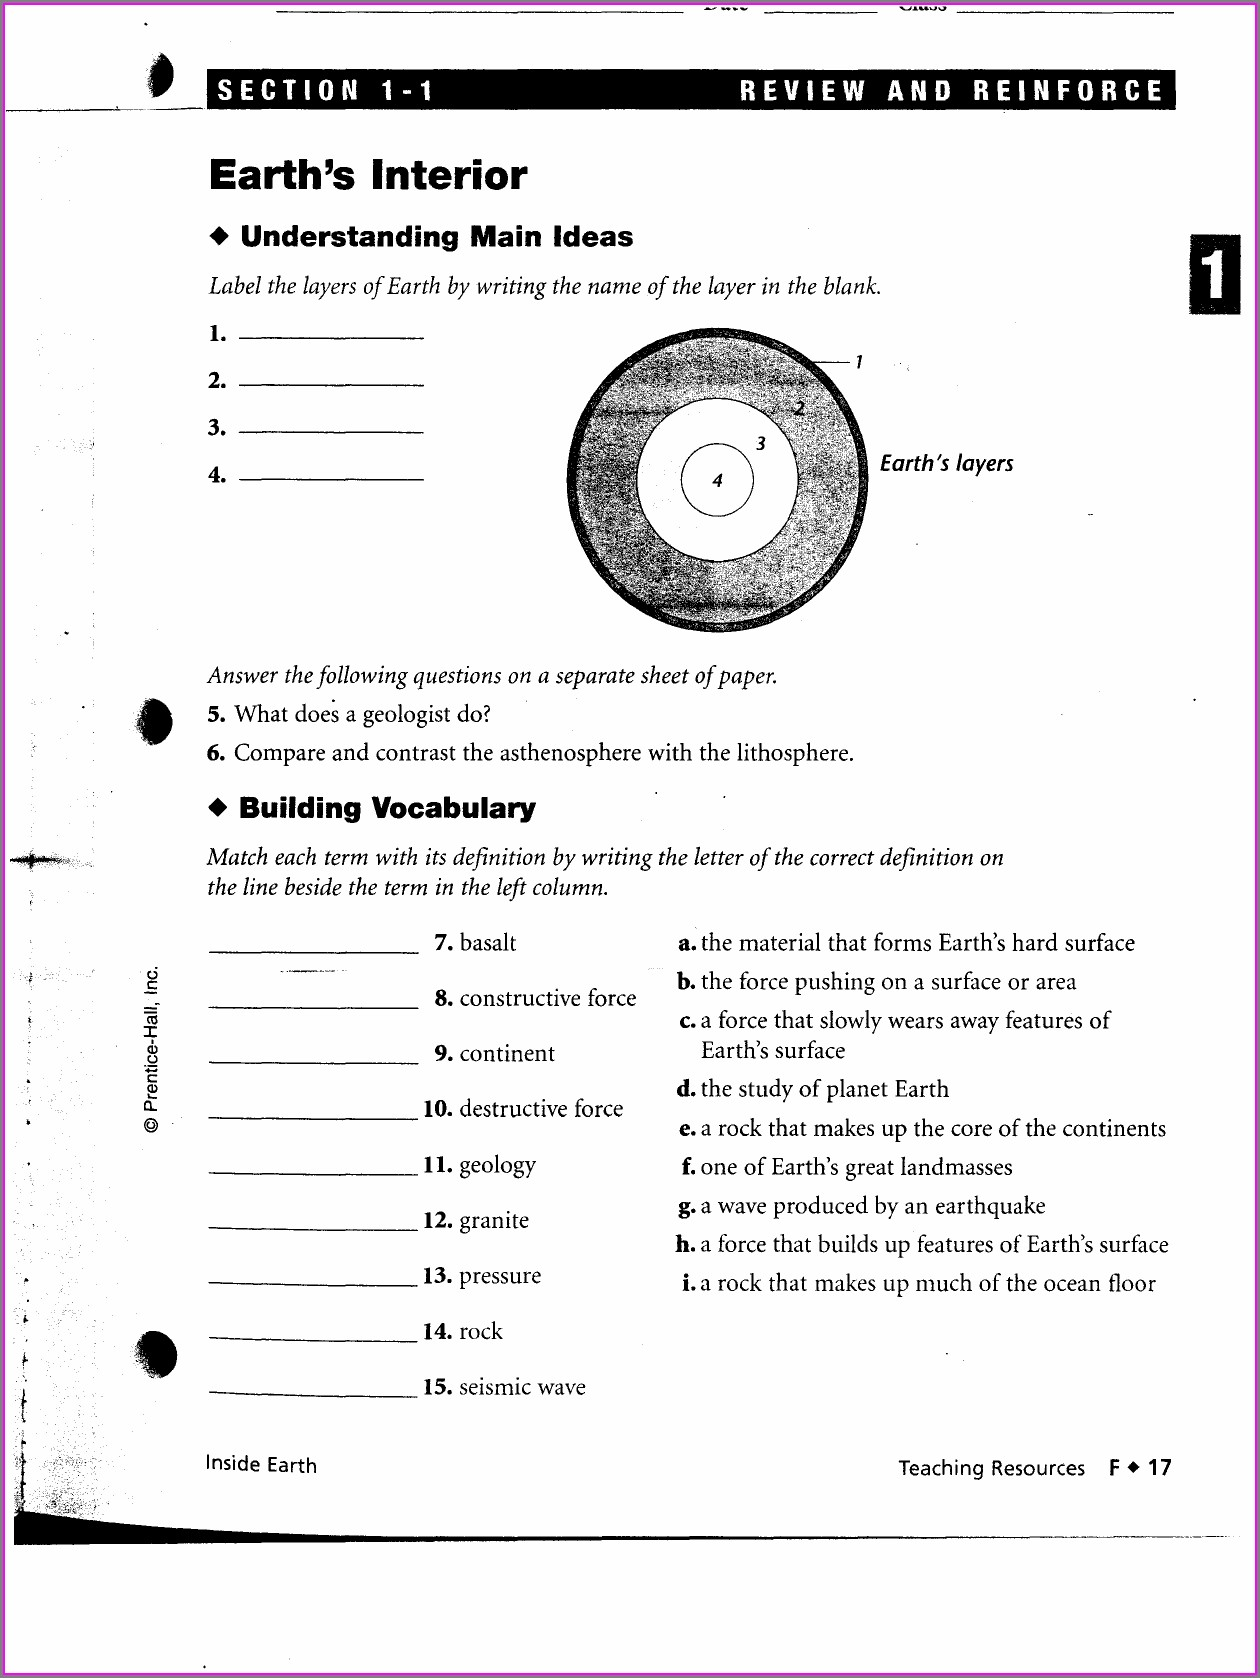 Plate Tectonics Review And Reinforce Worksheet Answers